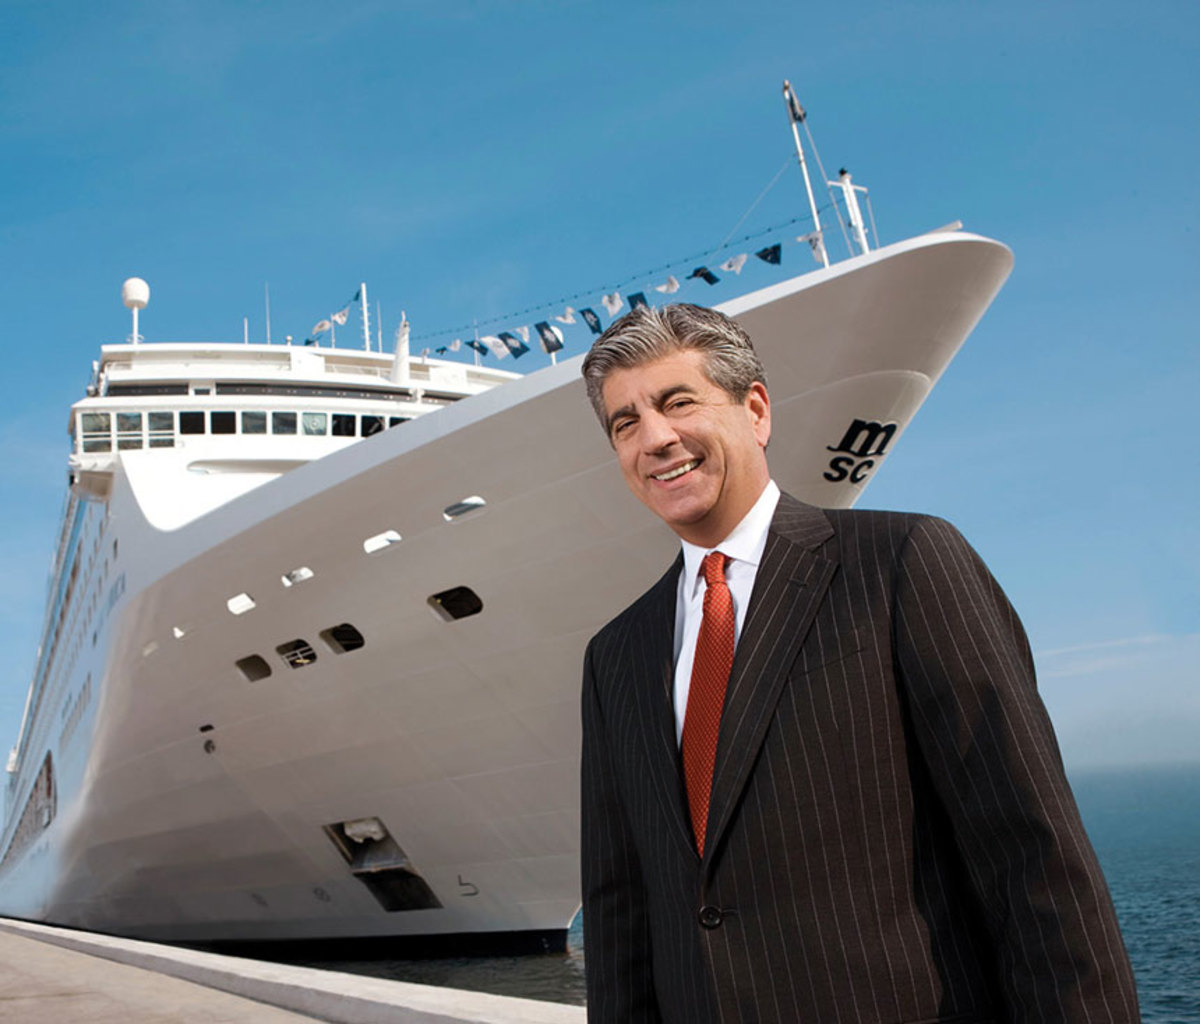 Rick Sasso, chairman of MSC Cruises North America, is among the people that the Coast Guard Foundation will honor at the dinner in Fort Lauderdale.